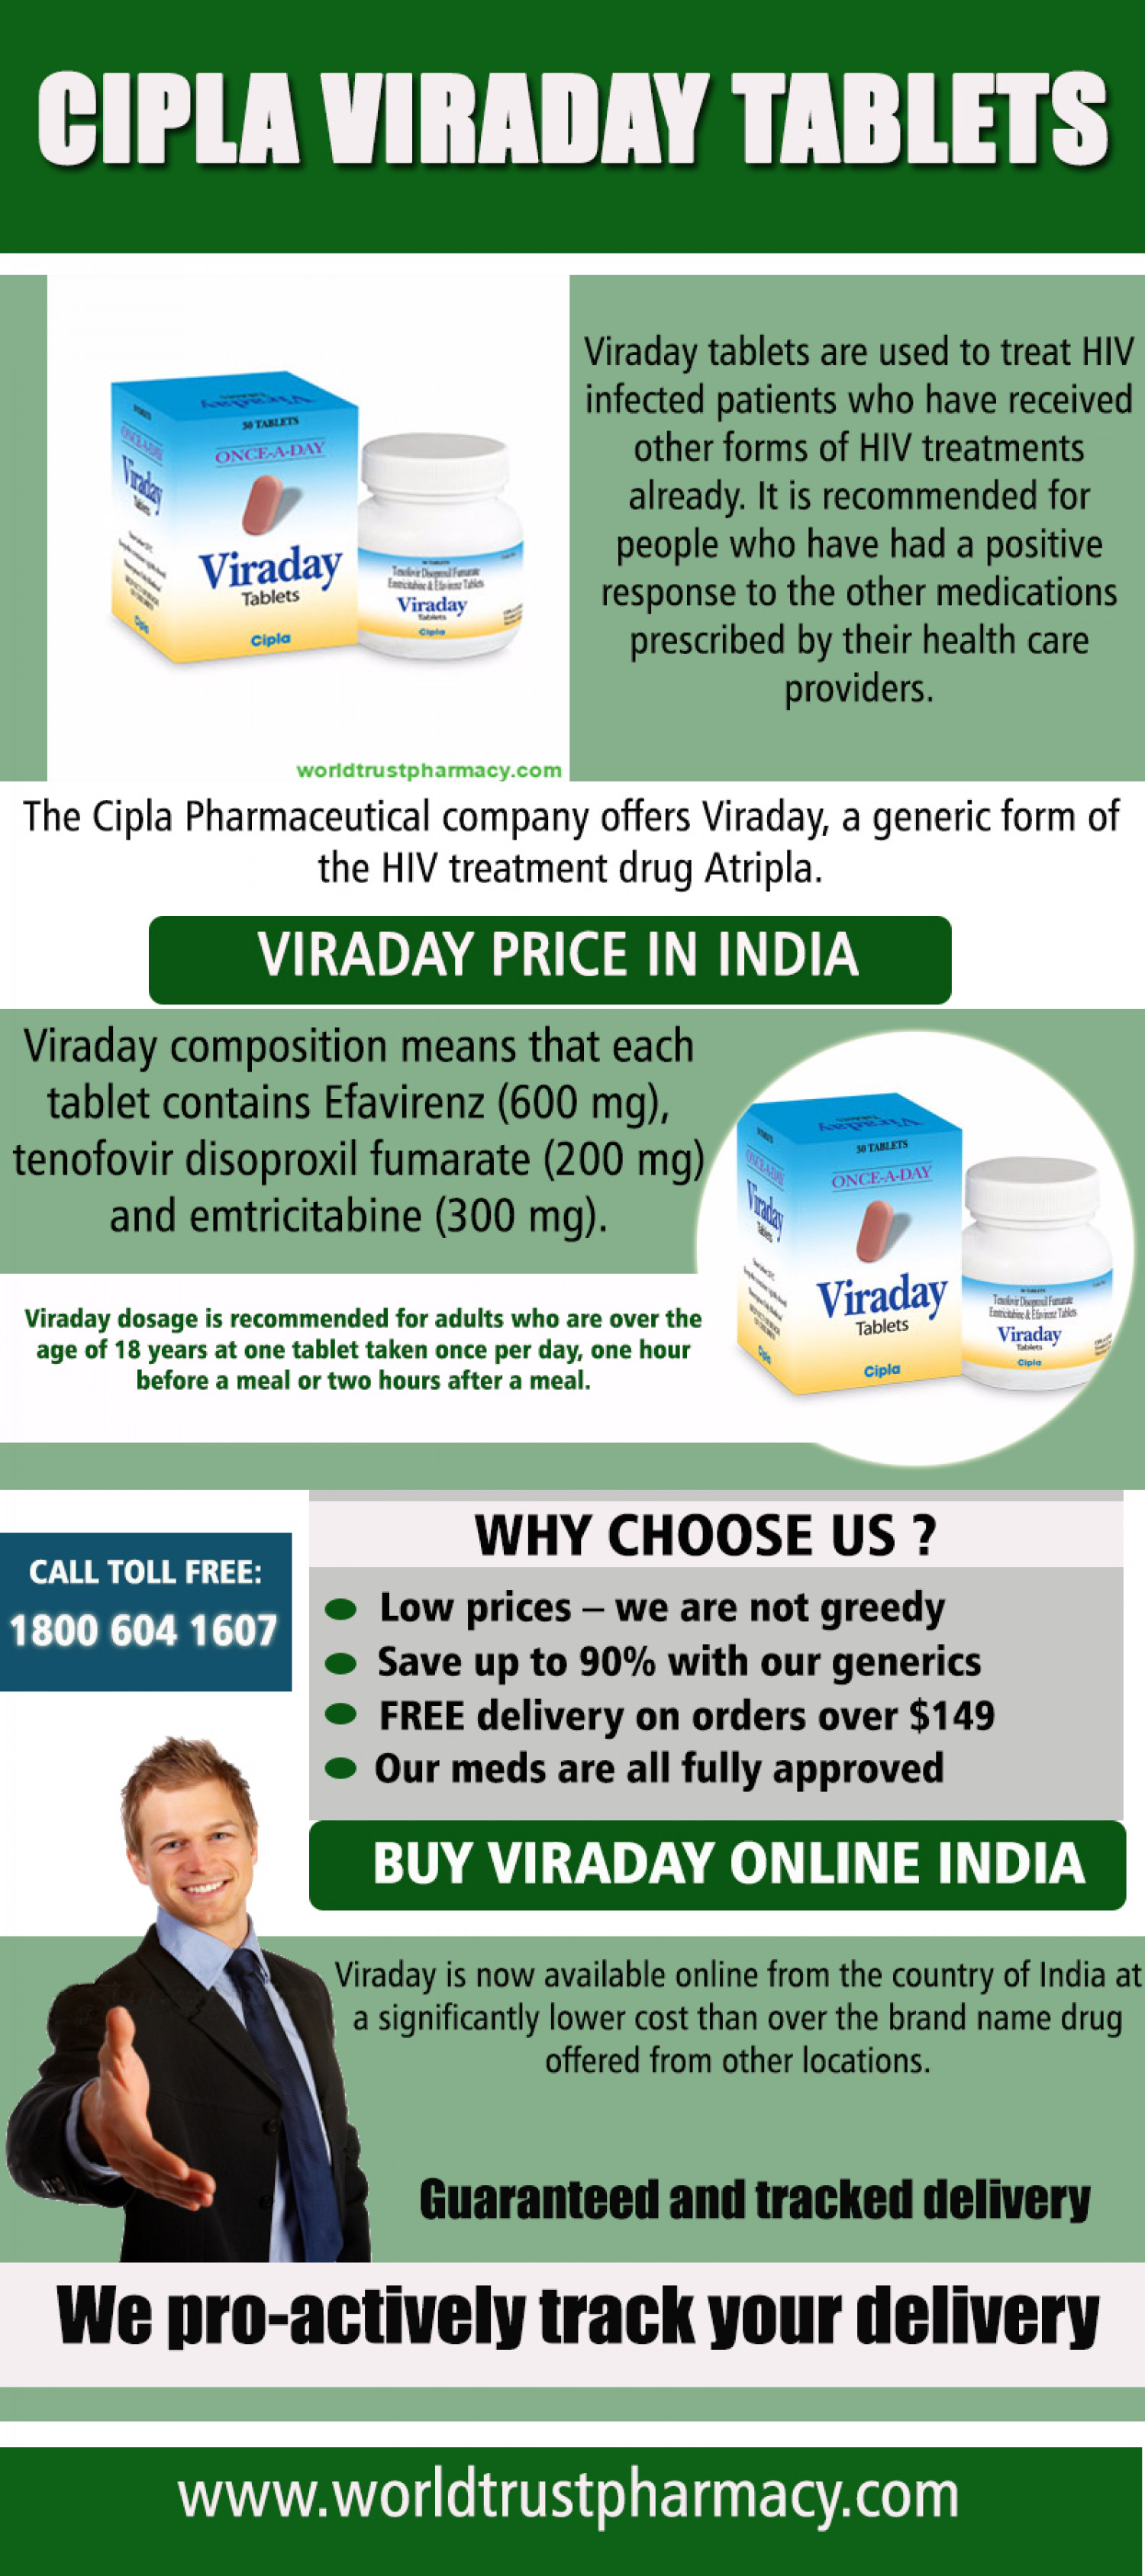 Cipla Viraday Tablets Infographic